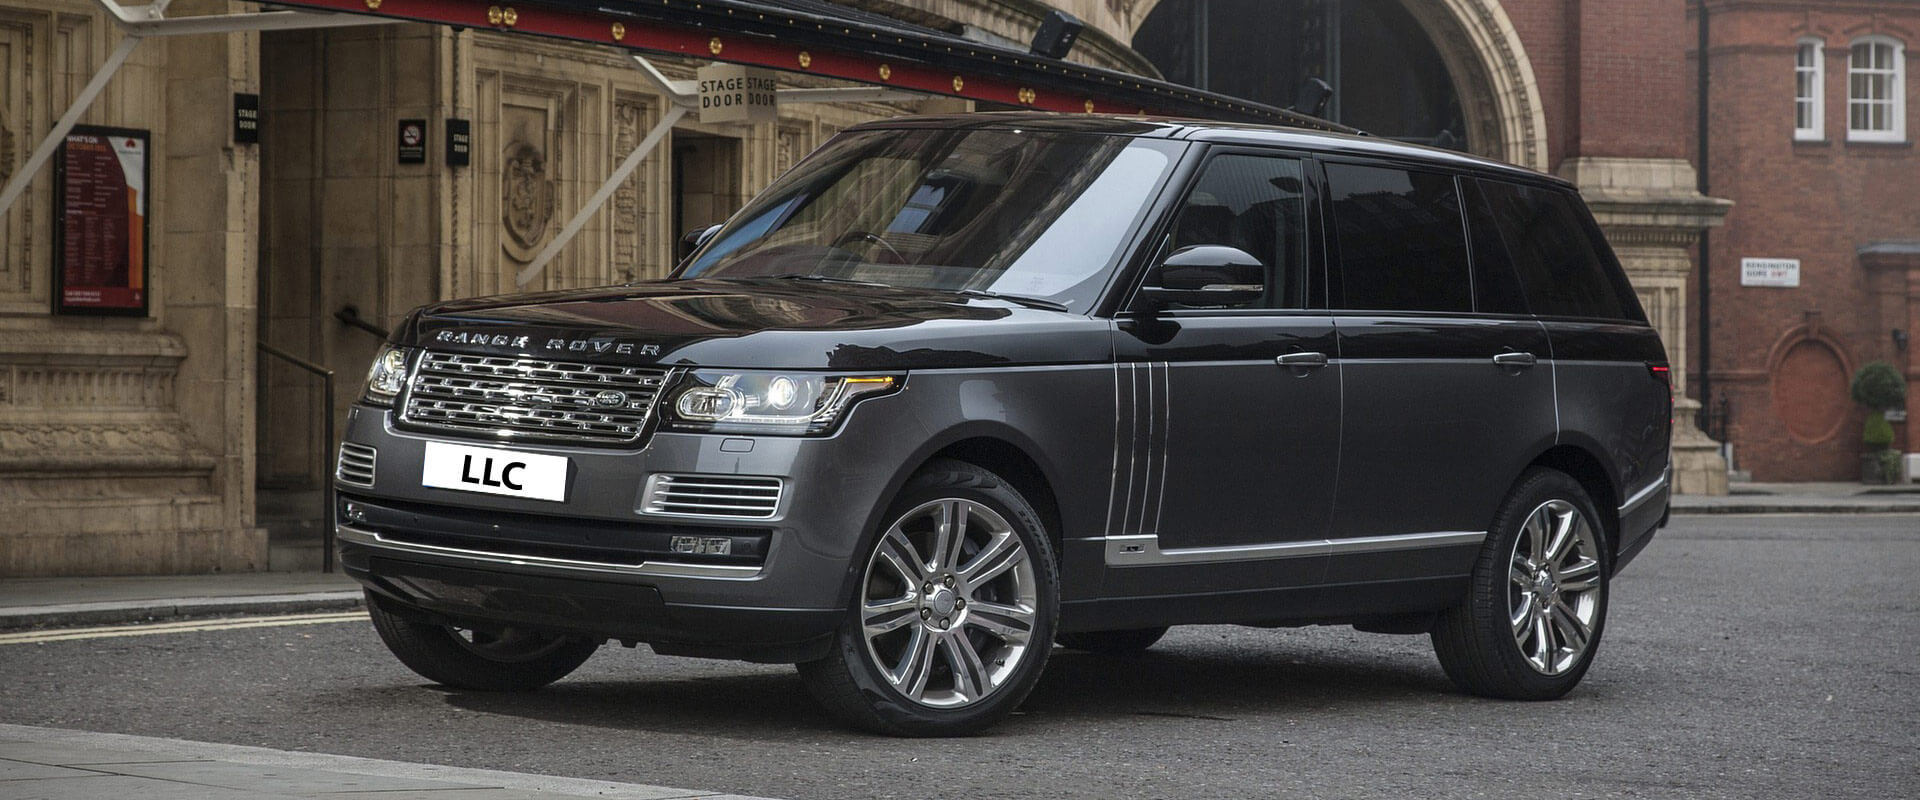 Range Rover Autobiography Chauffeur Hire London Llc